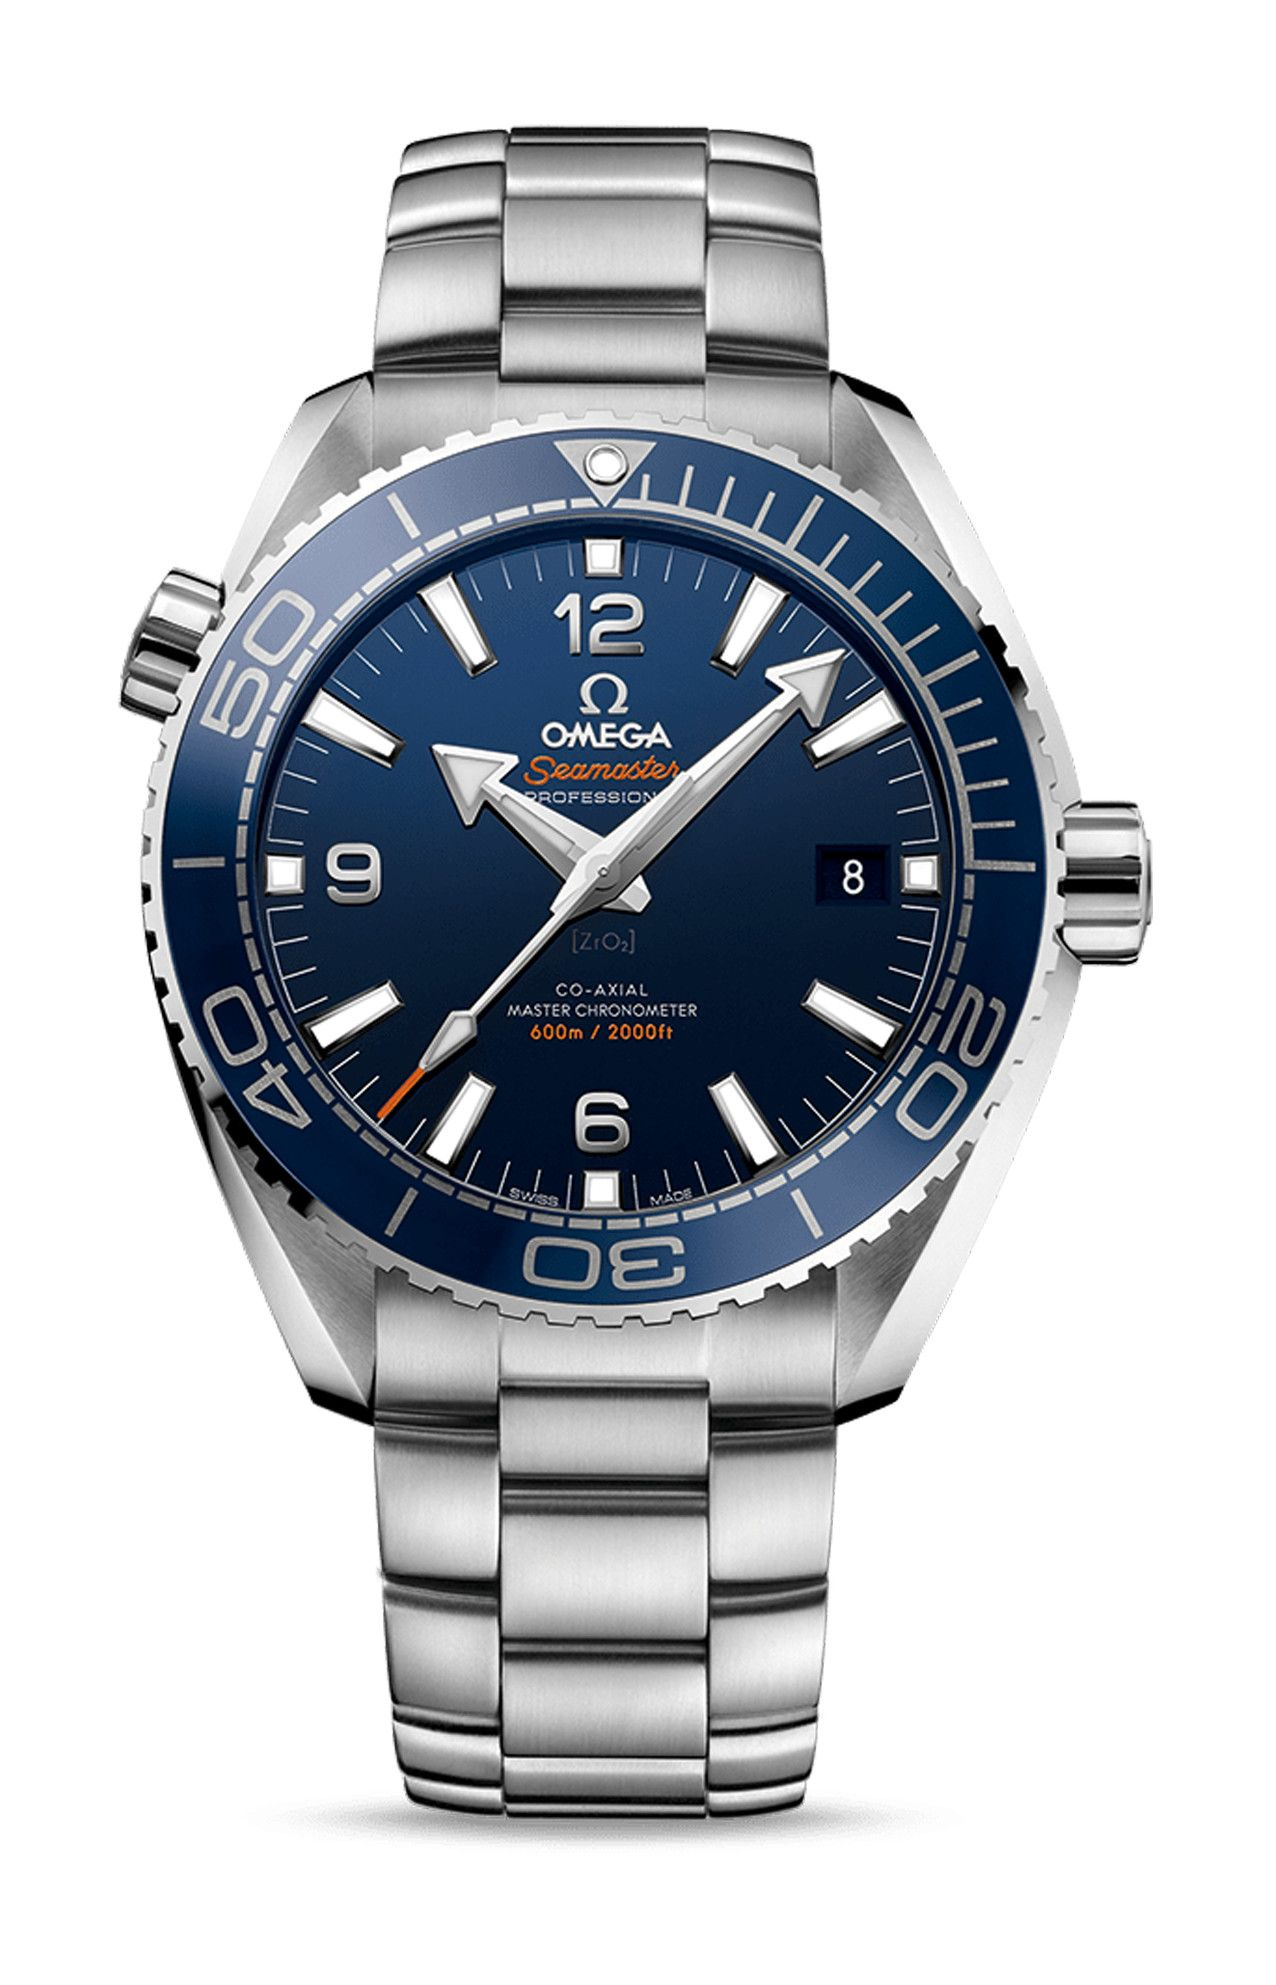 PLANET OCEAN 600M CO-AXIAL MASTER CHRONOMETER - 215.30.44.21.03.001